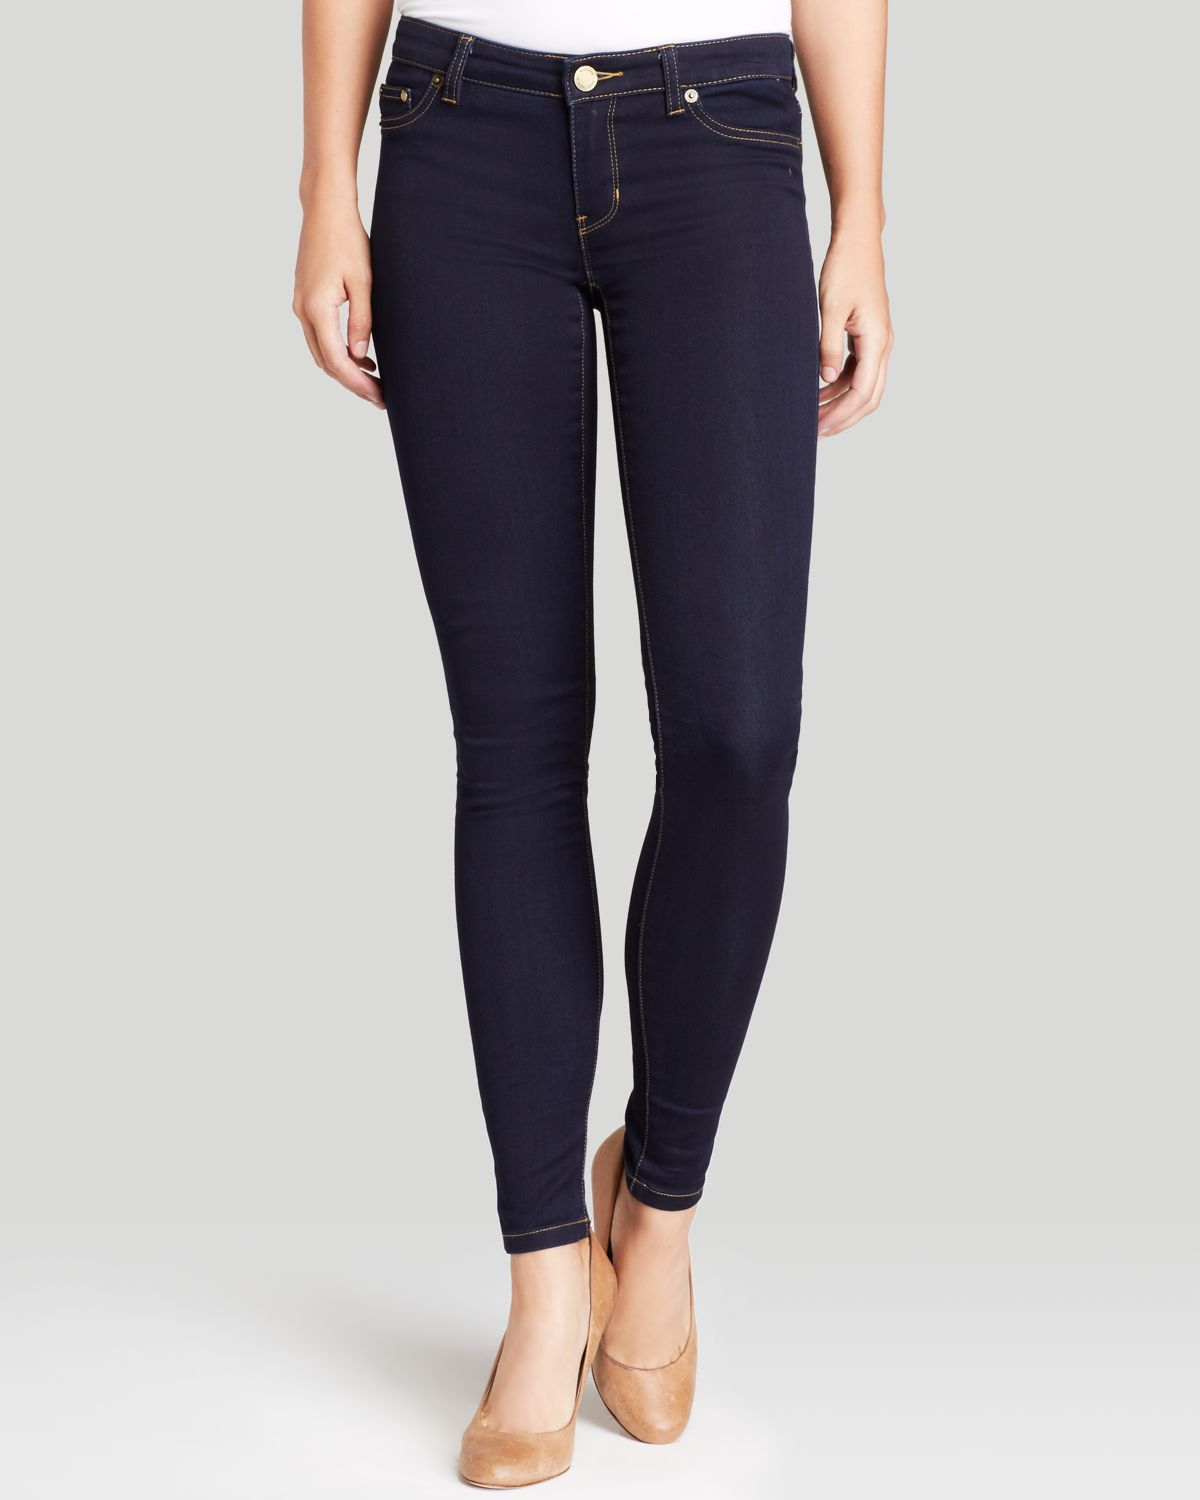 lyst michael michael kors skinny jeans in twilight in blue. Black Bedroom Furniture Sets. Home Design Ideas